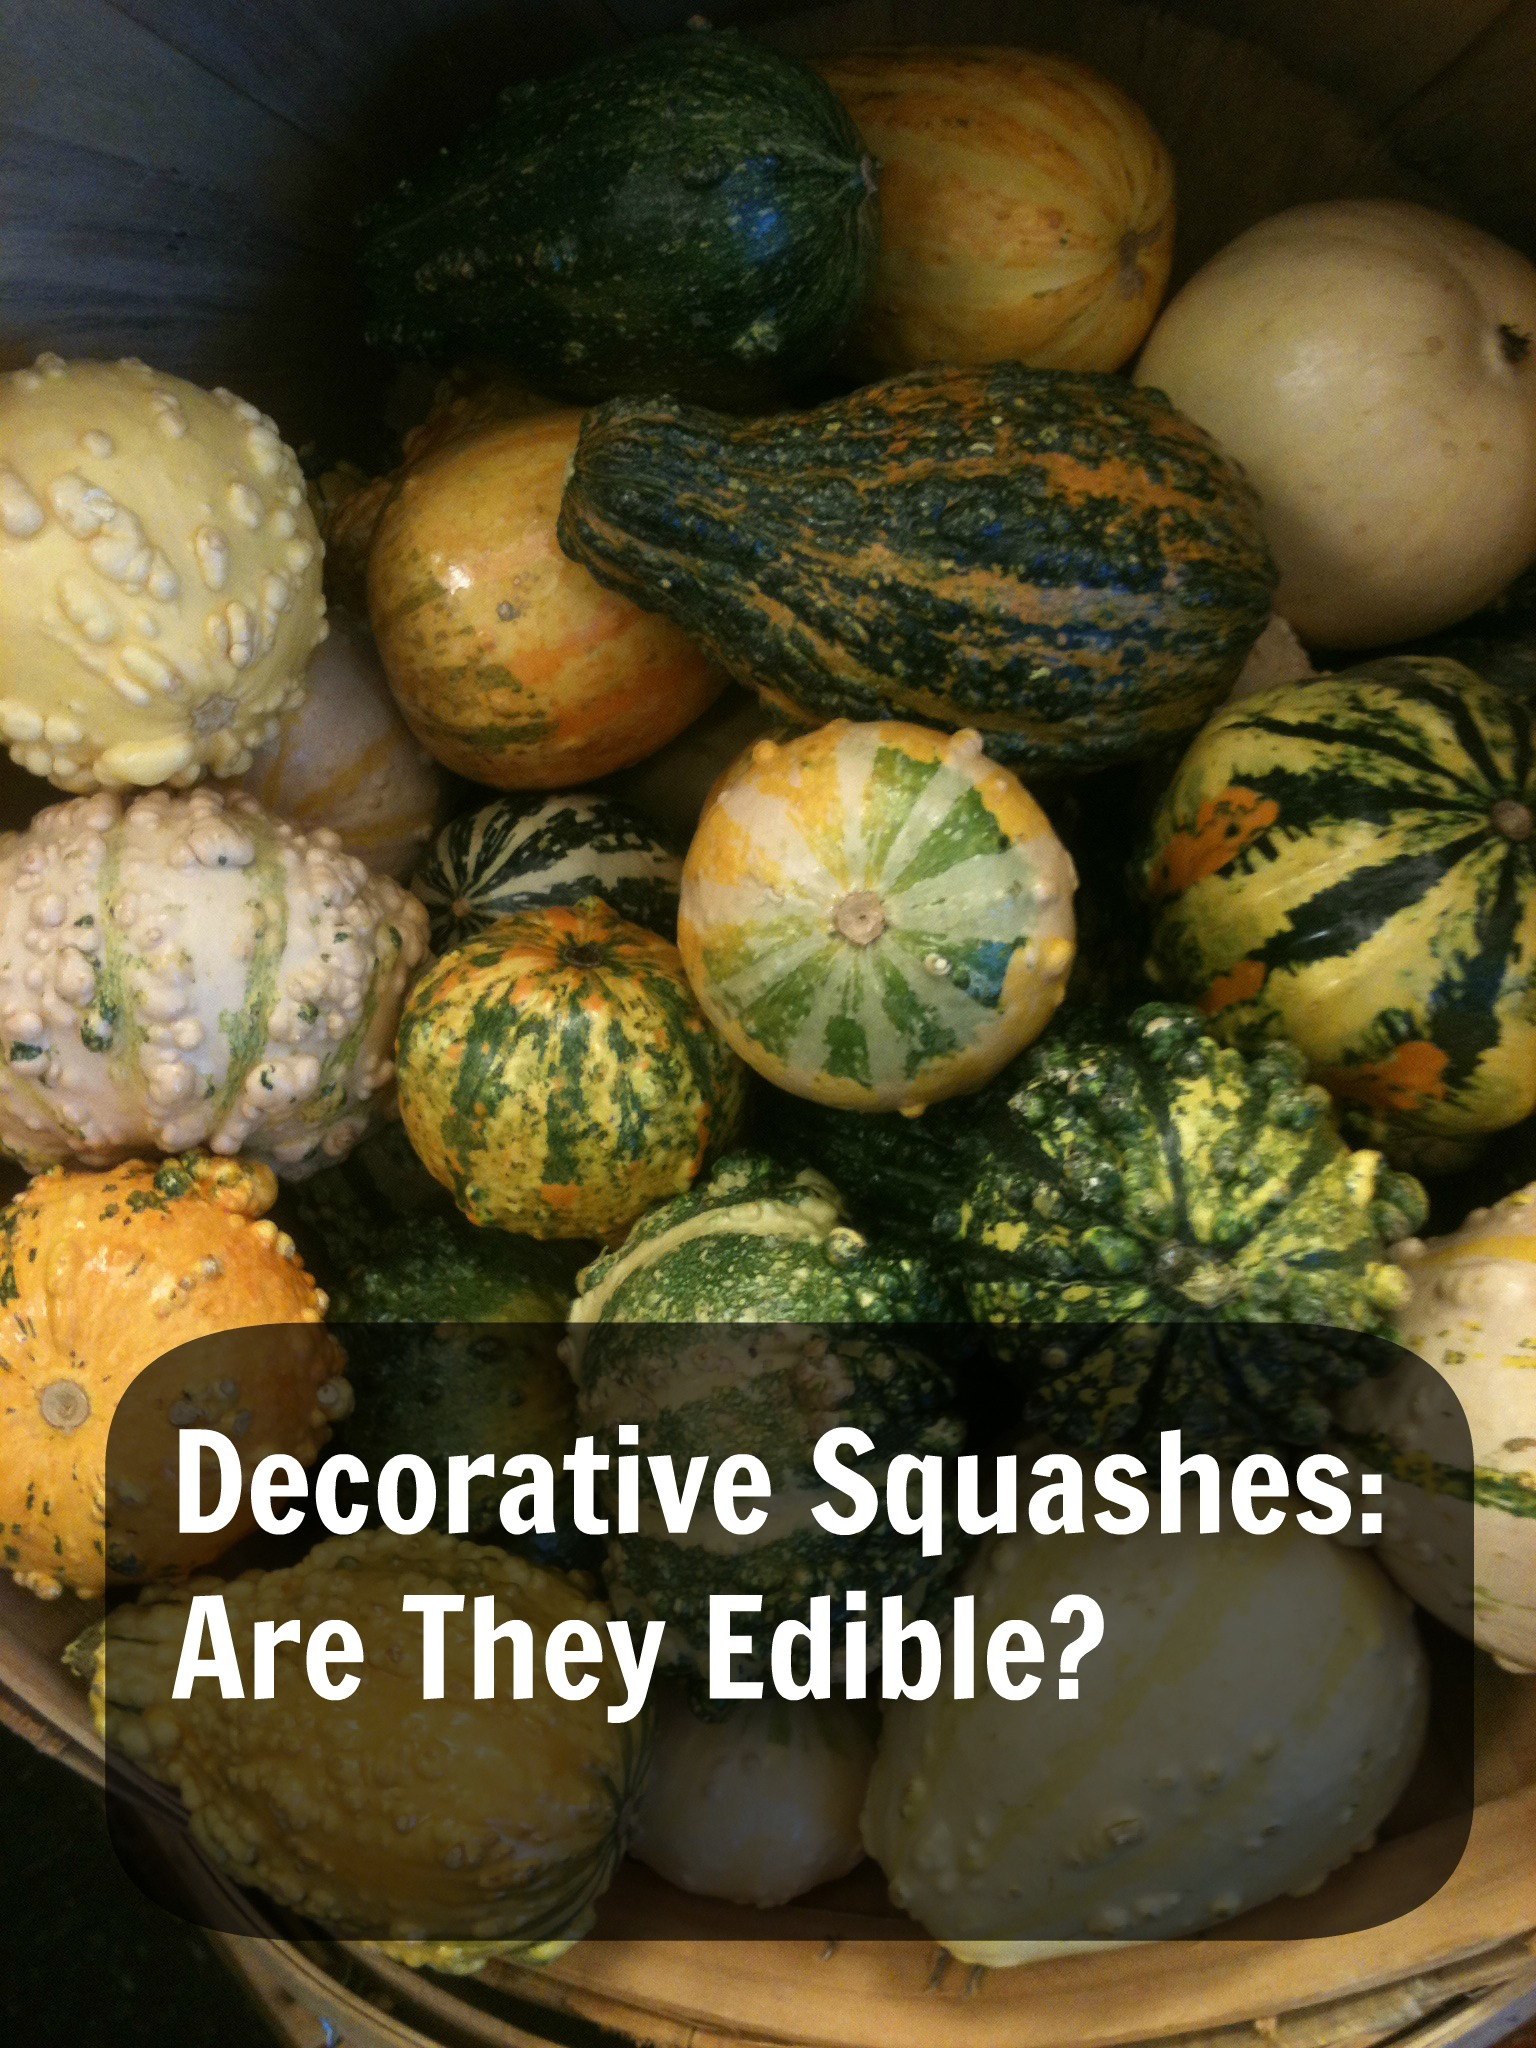 Decorative Squashes Are They Edible Mom Prepares